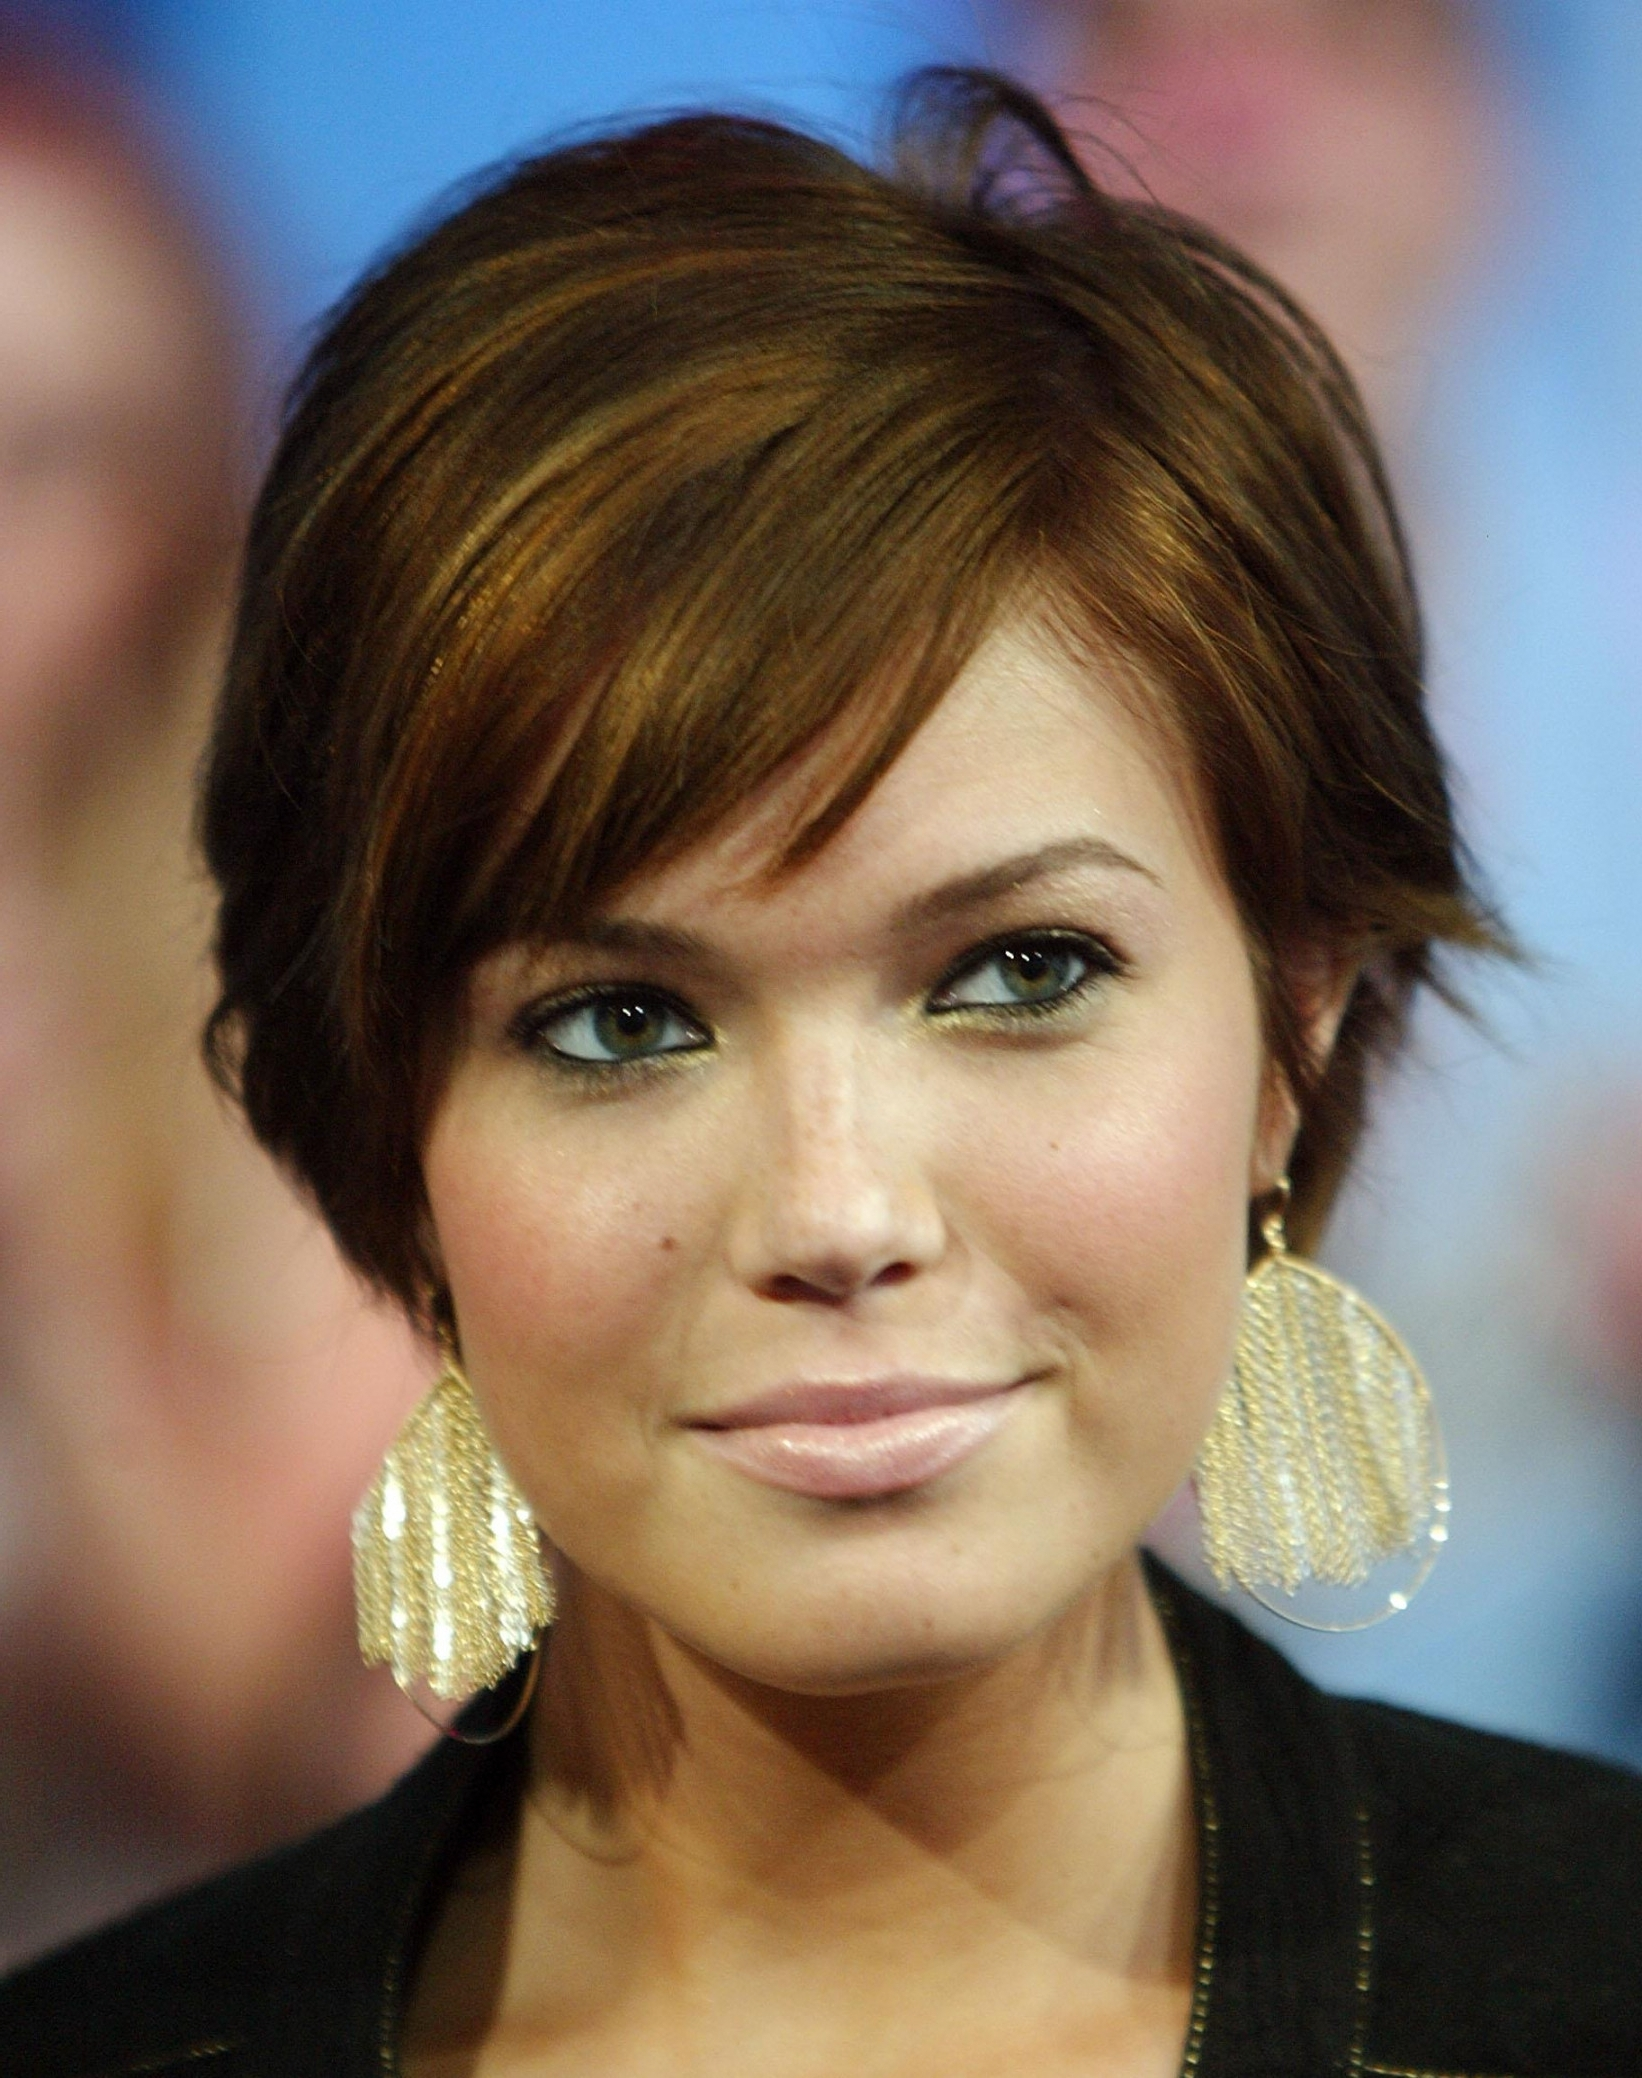 Ideas Short Wavy Hairstyles For Round Faces With Double Chin And Throughout Well Known Wedding Hairstyles For Short Hair And Round Face (View 11 of 15)